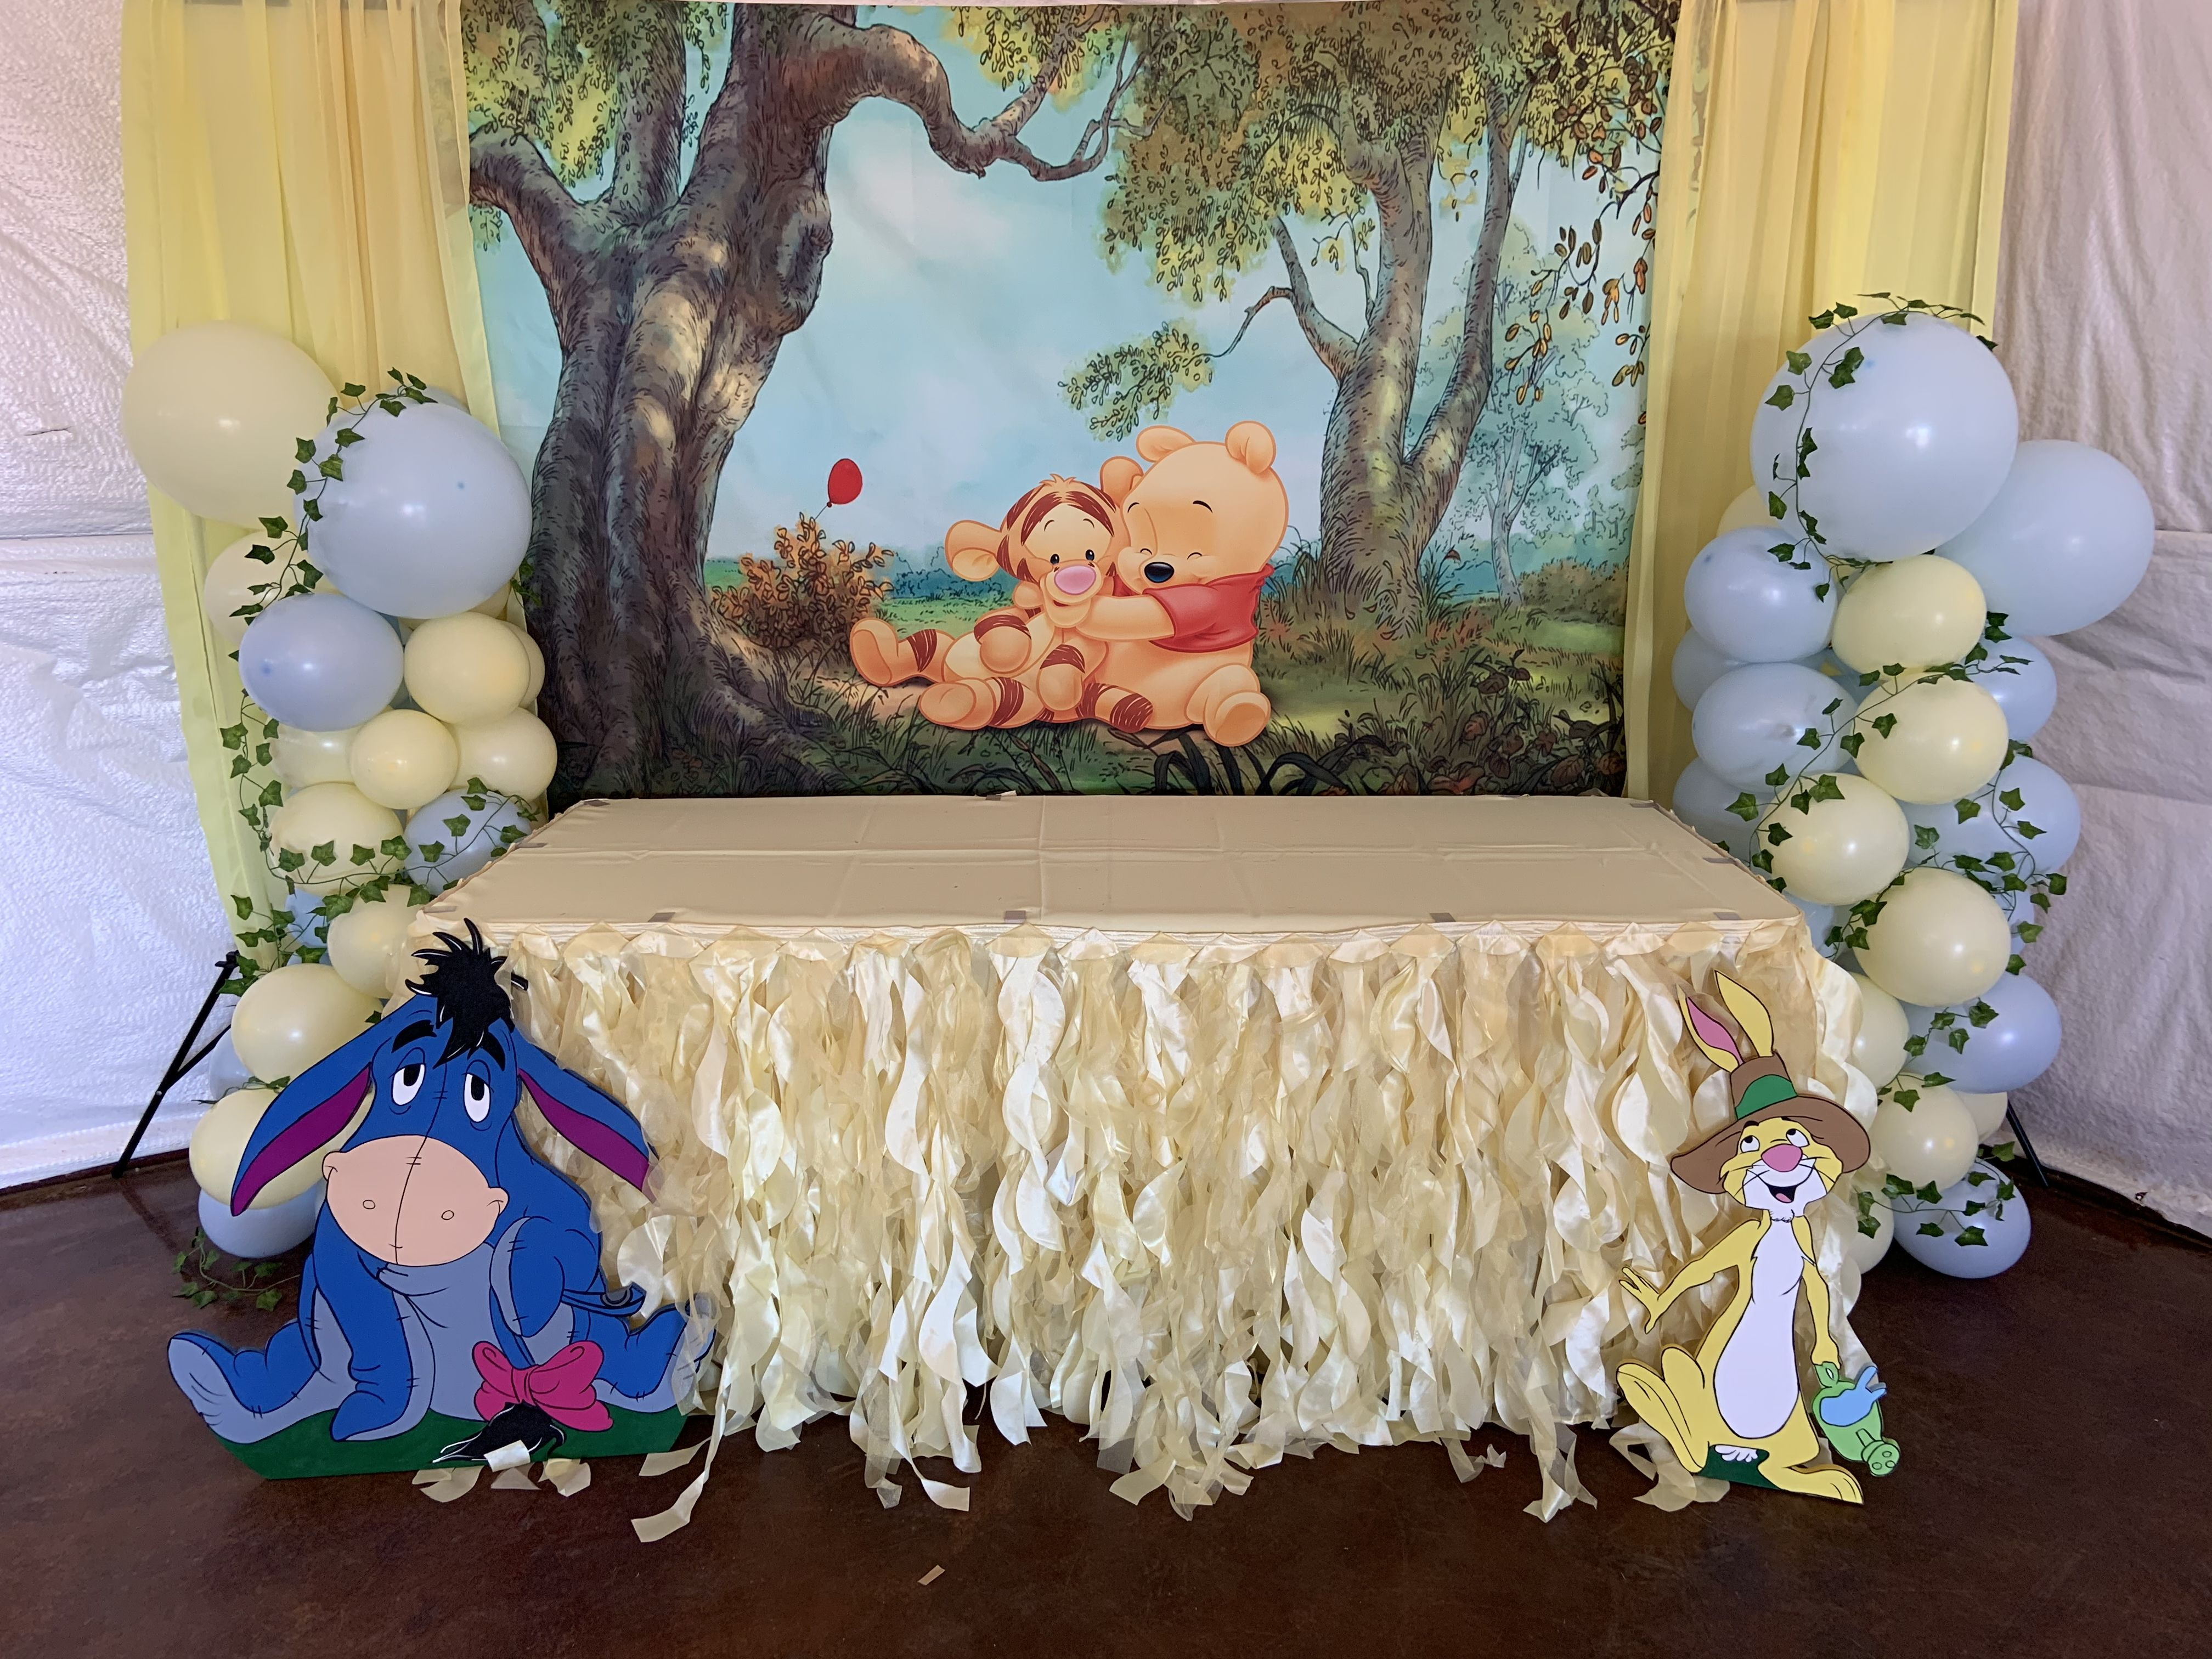 Winnie The Pooh Gift Table Winnie The Pooh Decor Baby Shower Backdrop Baby Shower Sash